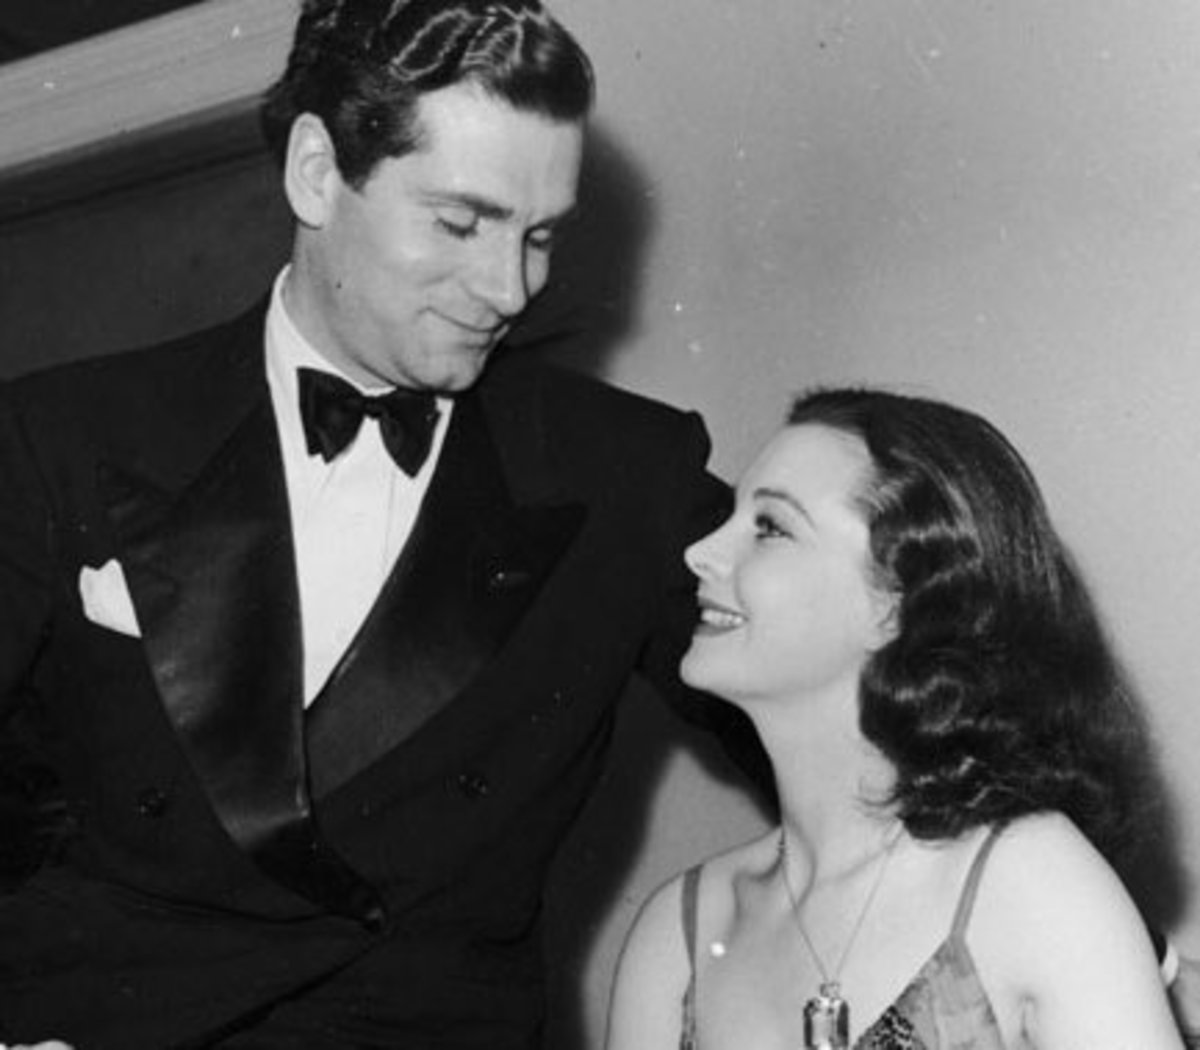 At the 1940 Academy Awards Ceremony